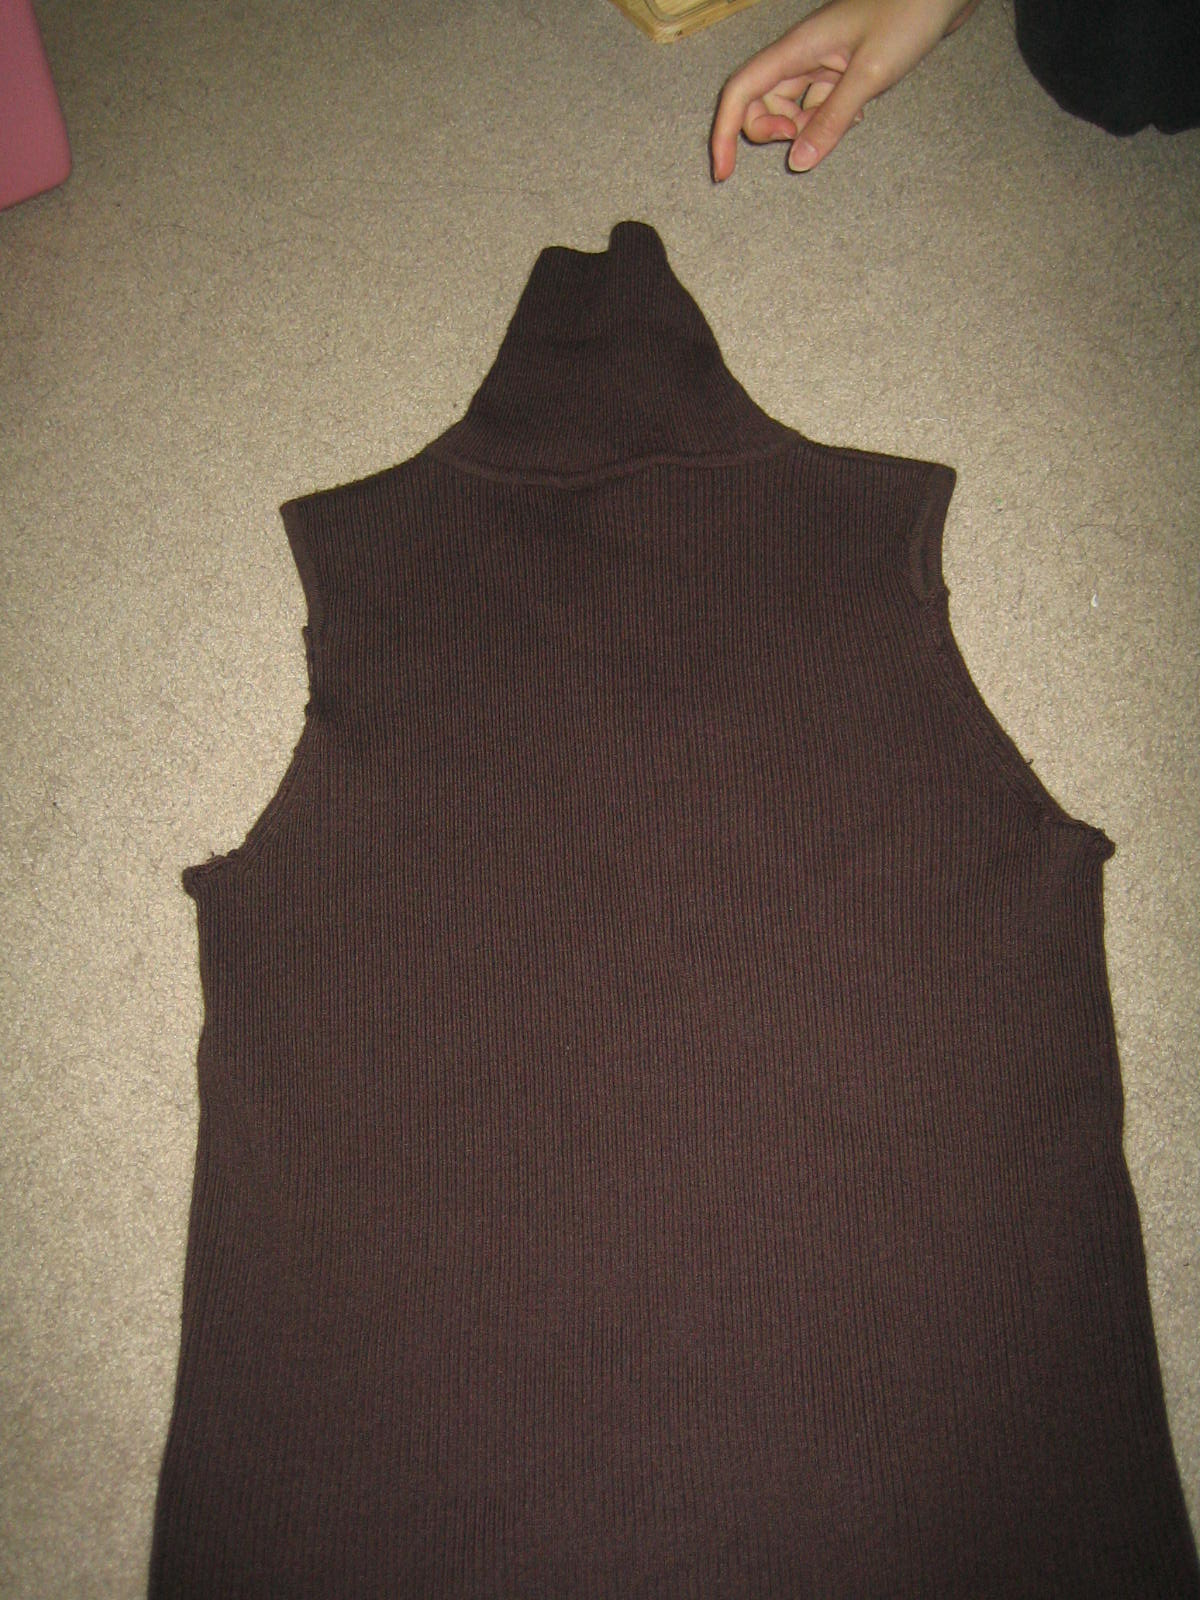 Picture of Alterations to Clothing